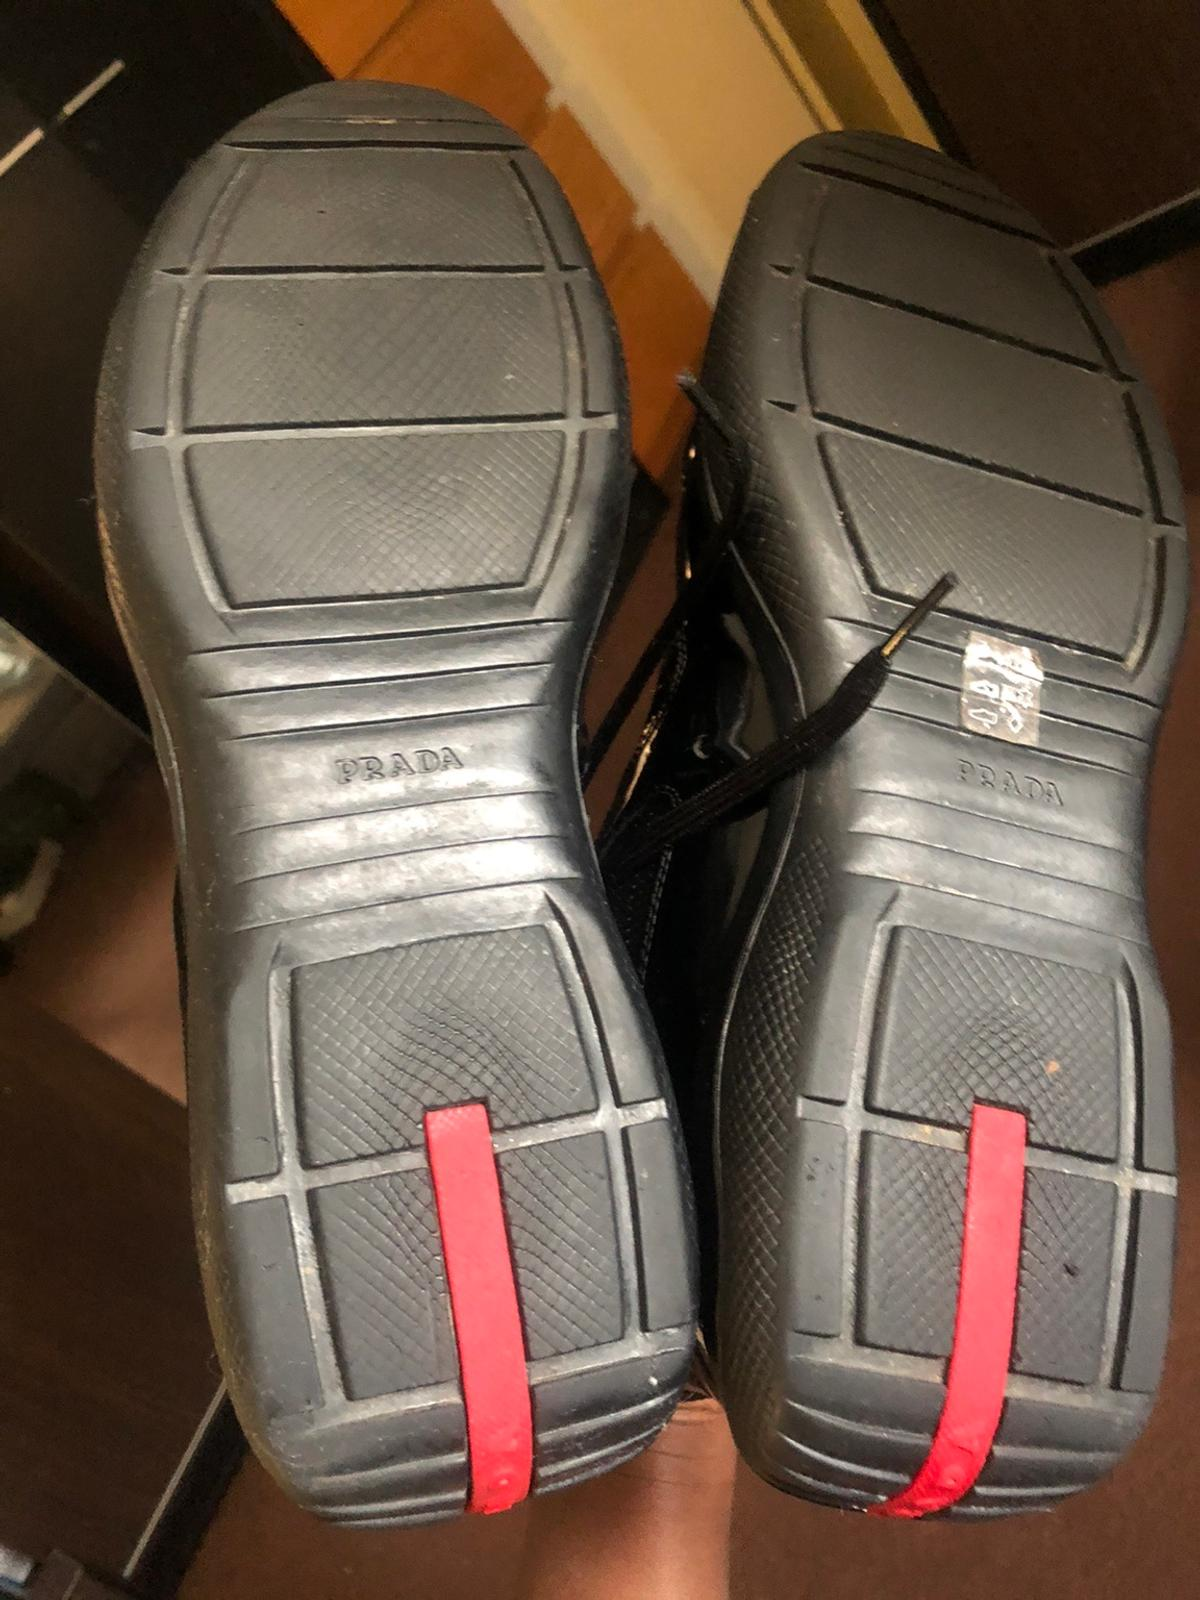 My beautiful pradas, size 10 but fit size 11 which I am by default. Kept in good condition. They are 100% authentic. I will include dust bag. Send offers, remember they are good condition and authentic so no unrealistic offers please